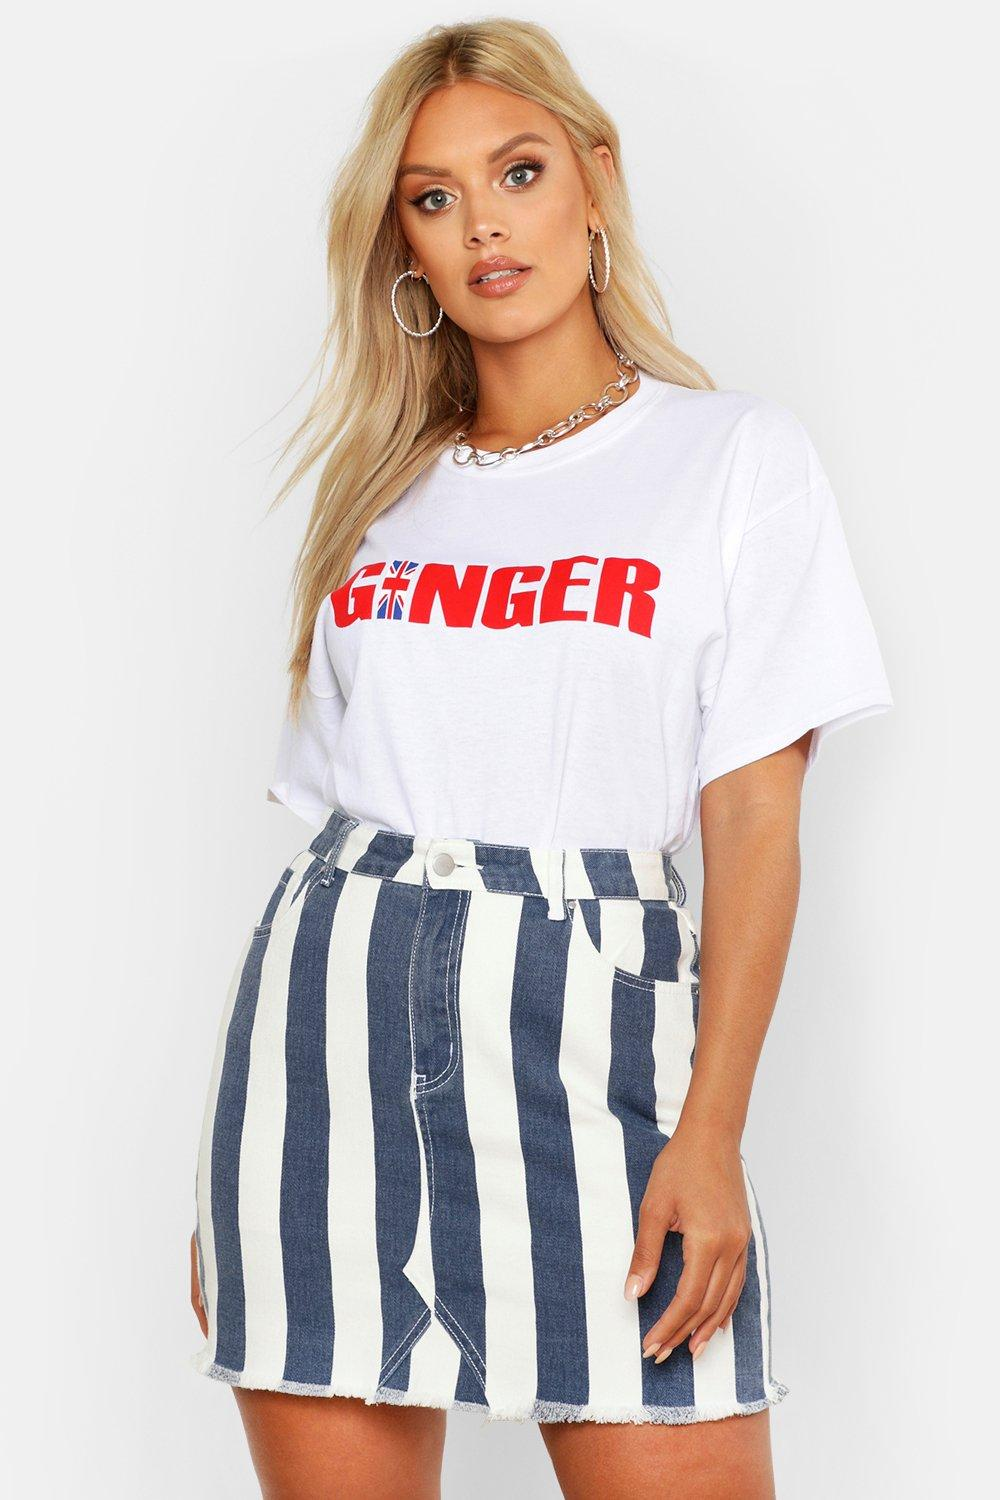 Plus Ginger Tee